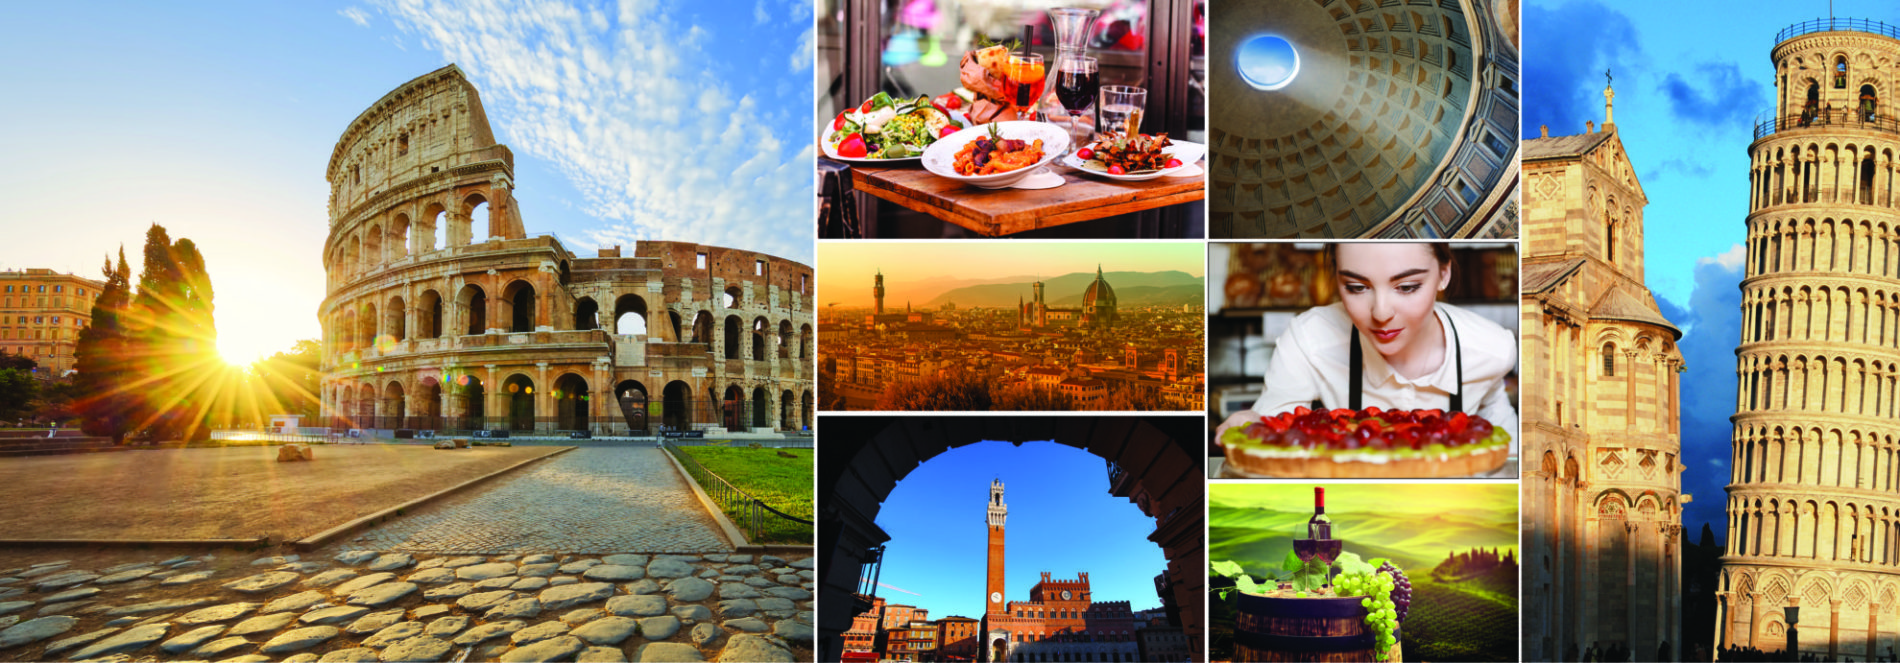 Experience Italy Tour